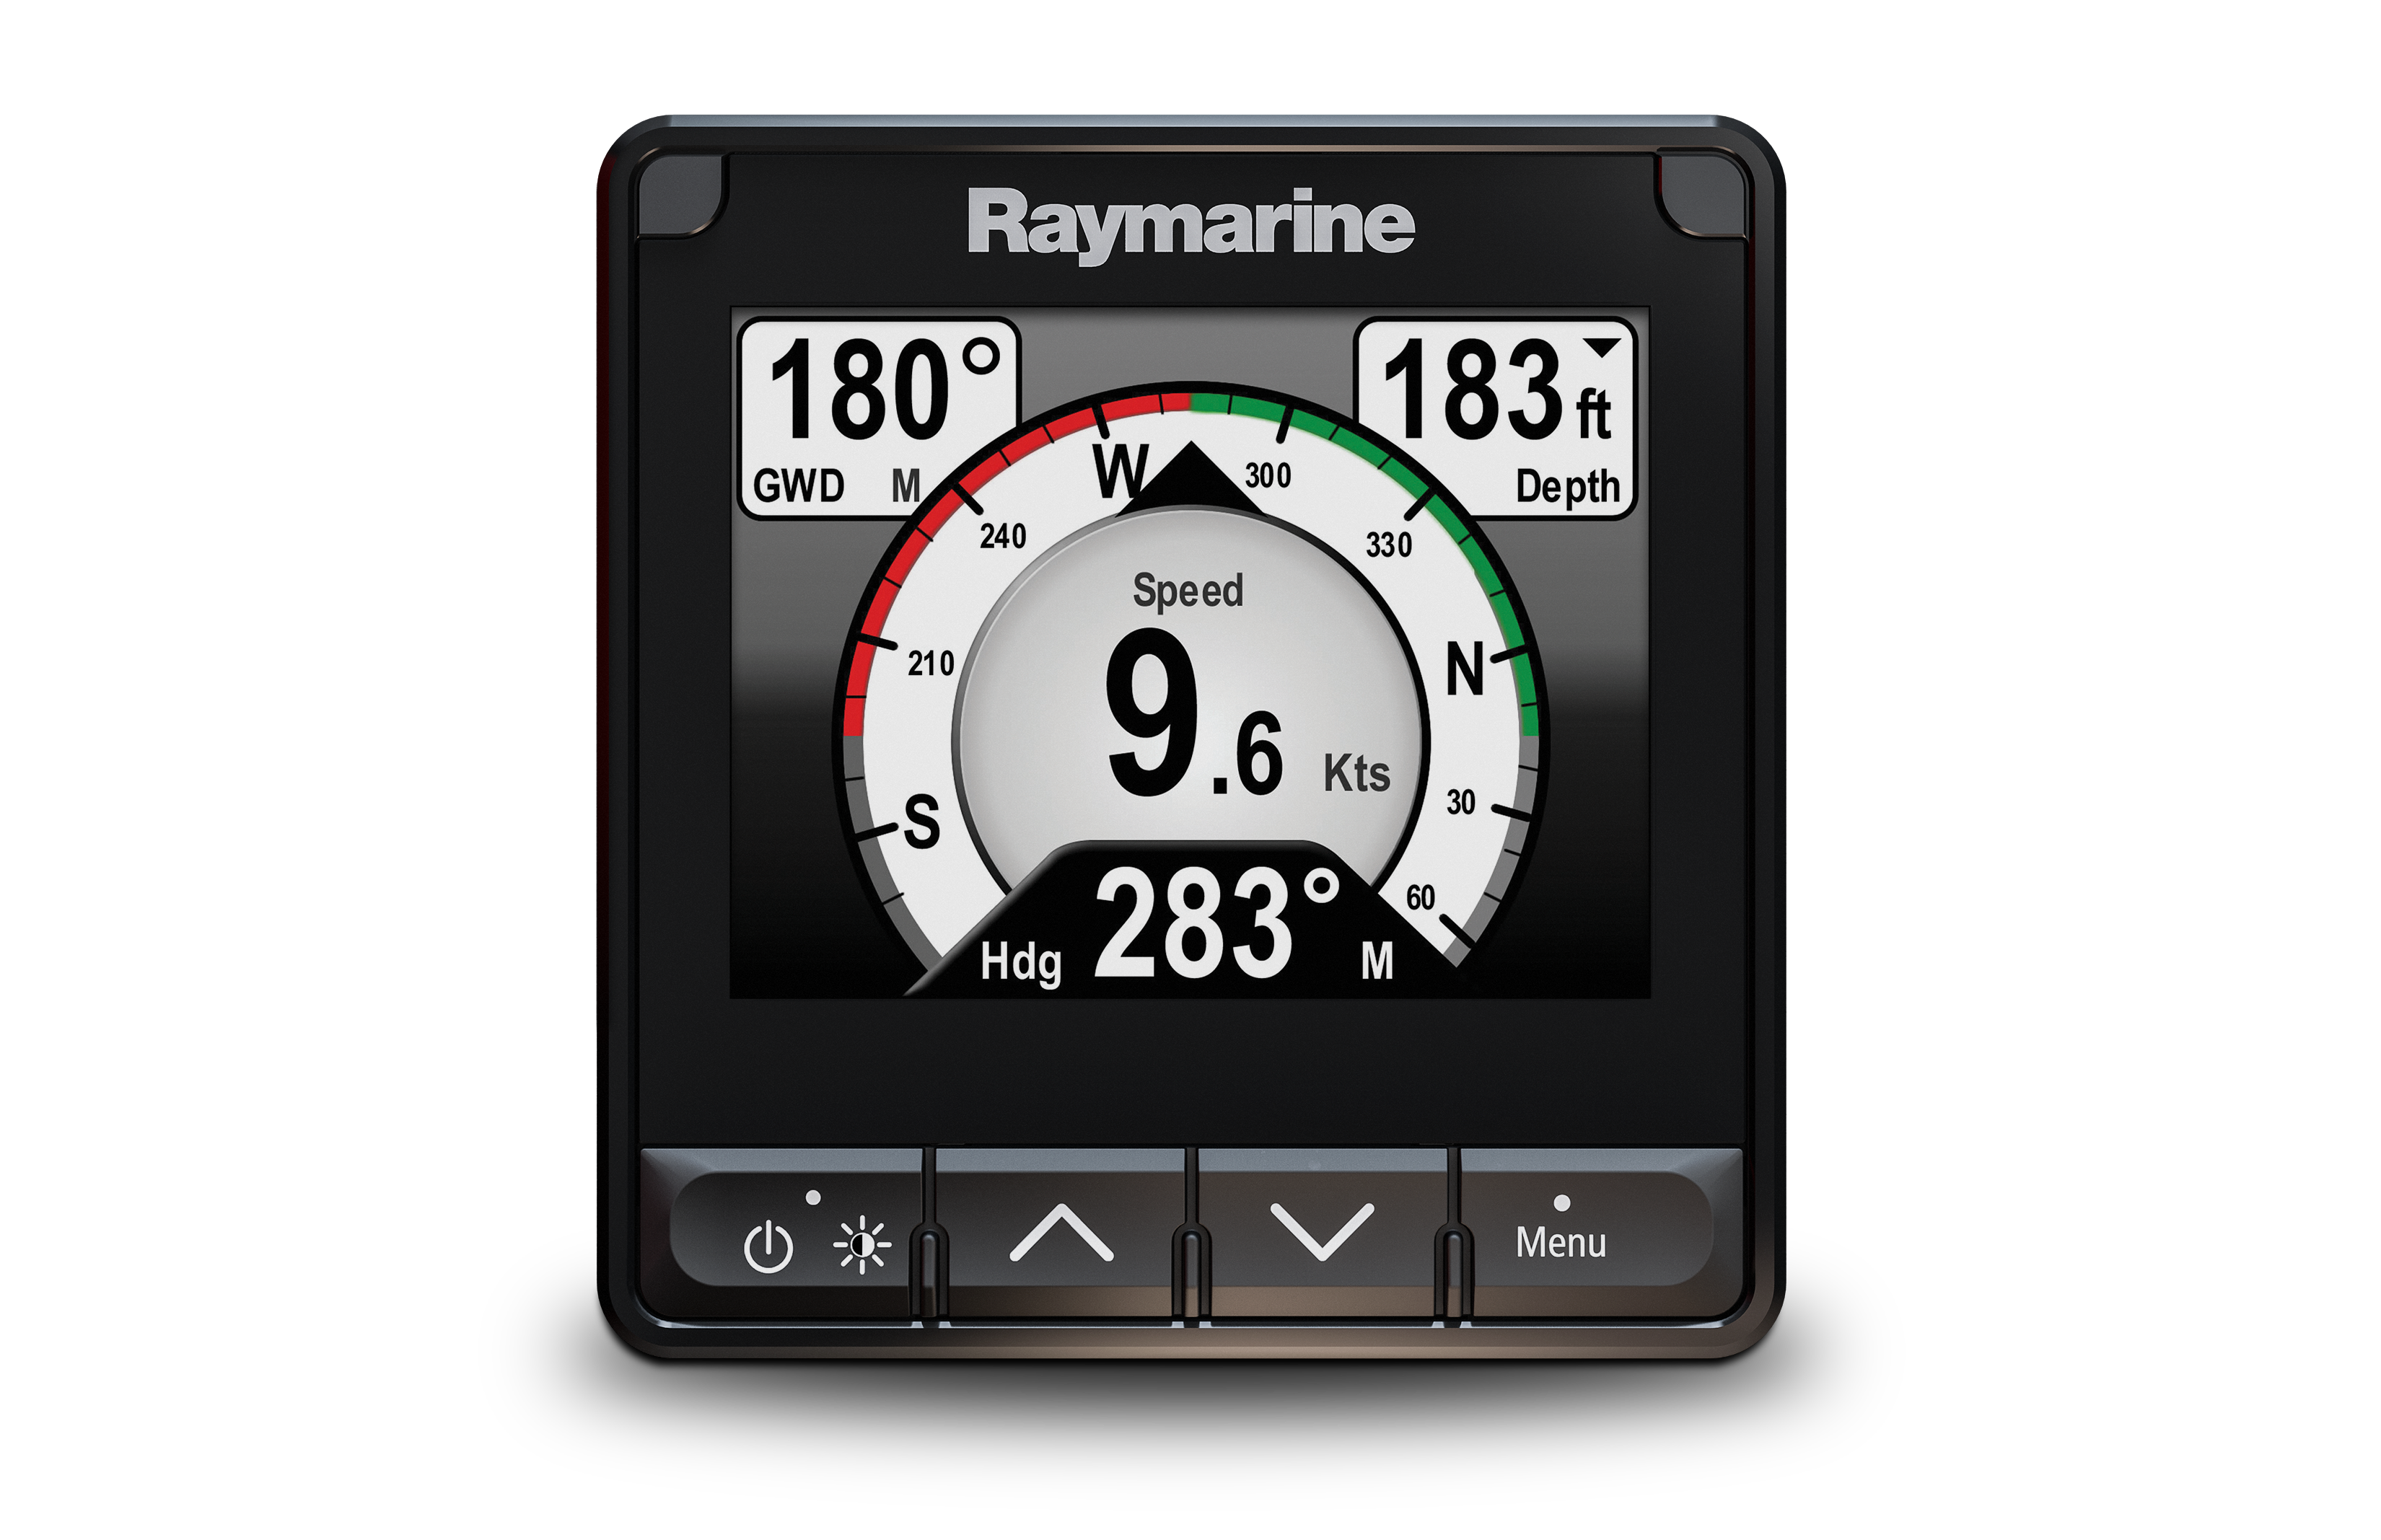 raymarine i70s hero multifunction display front view